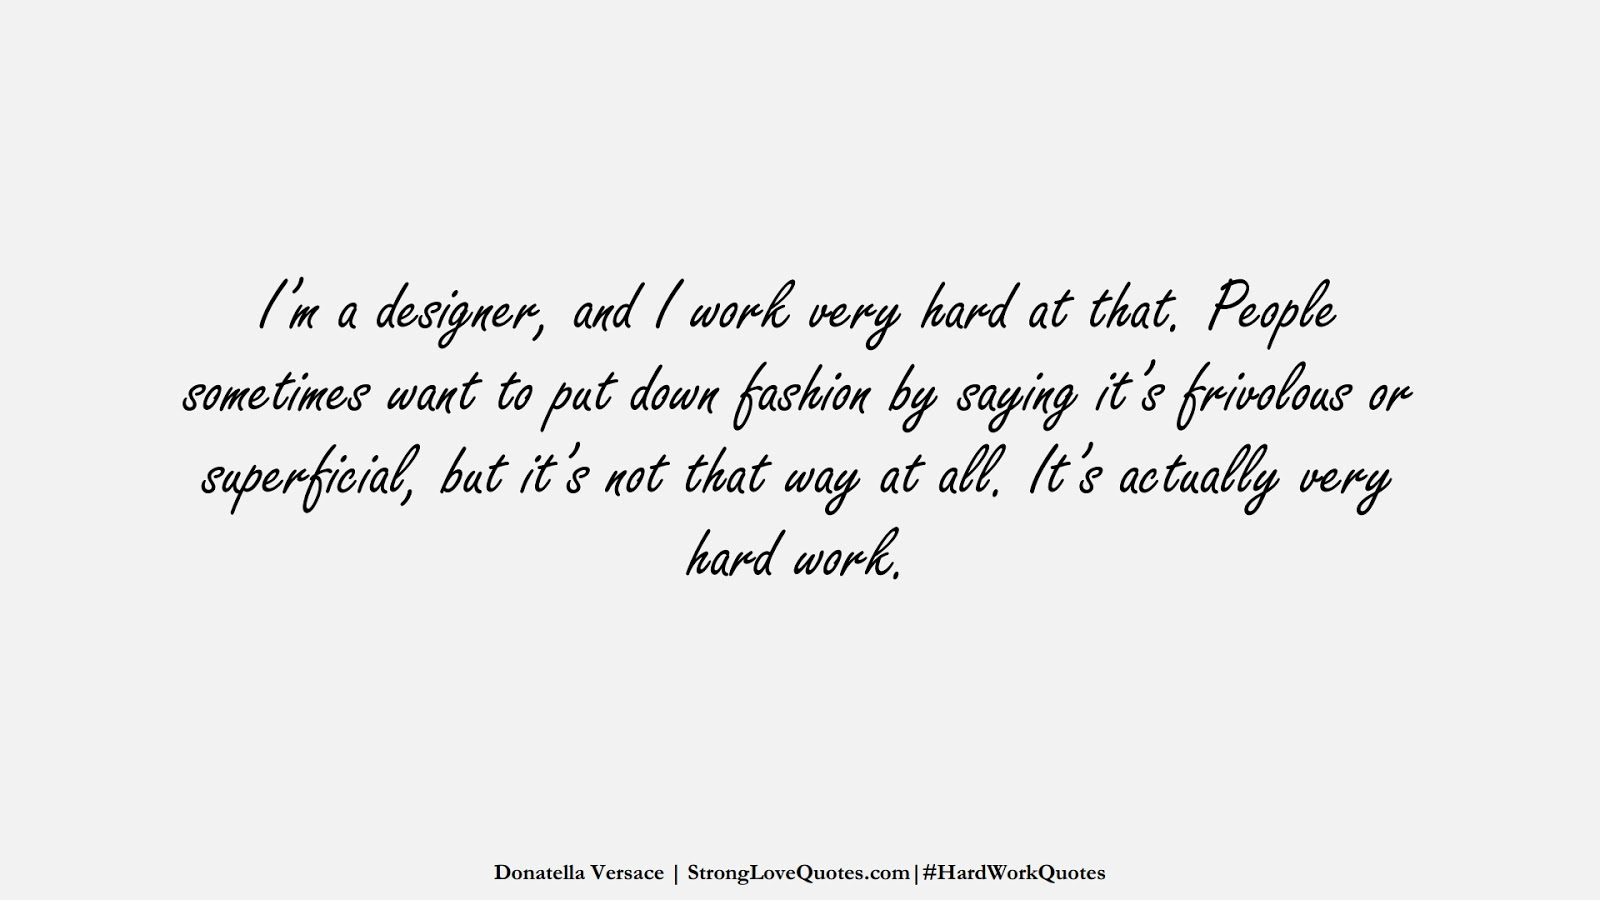 I'm a designer, and I work very hard at that. People sometimes want to put down fashion by saying it's frivolous or superficial, but it's not that way at all. It's actually very hard work. (Donatella Versace);  #HardWorkQuotes